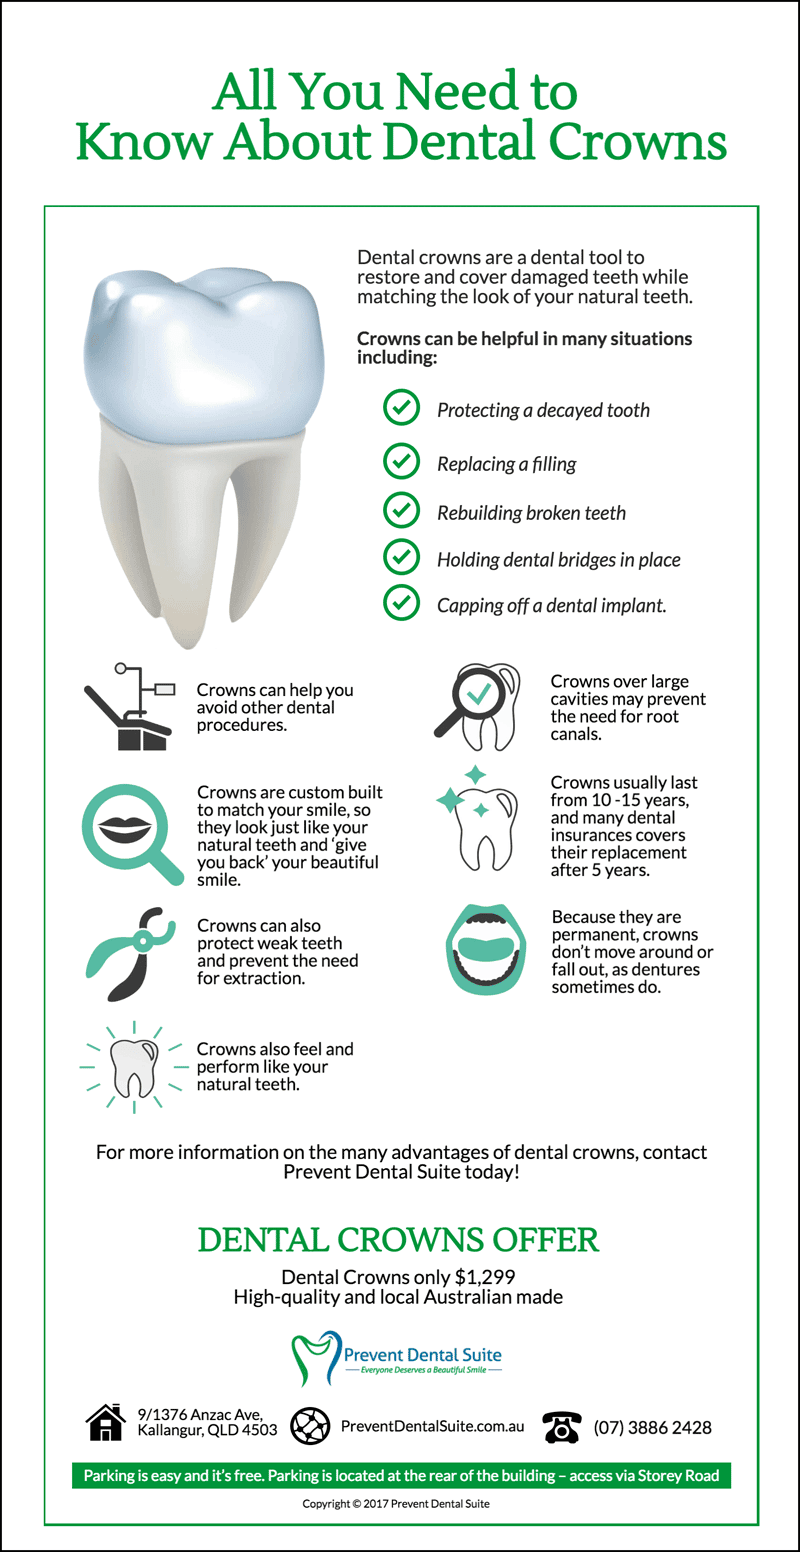 All You Need To Know About Dental Crowns